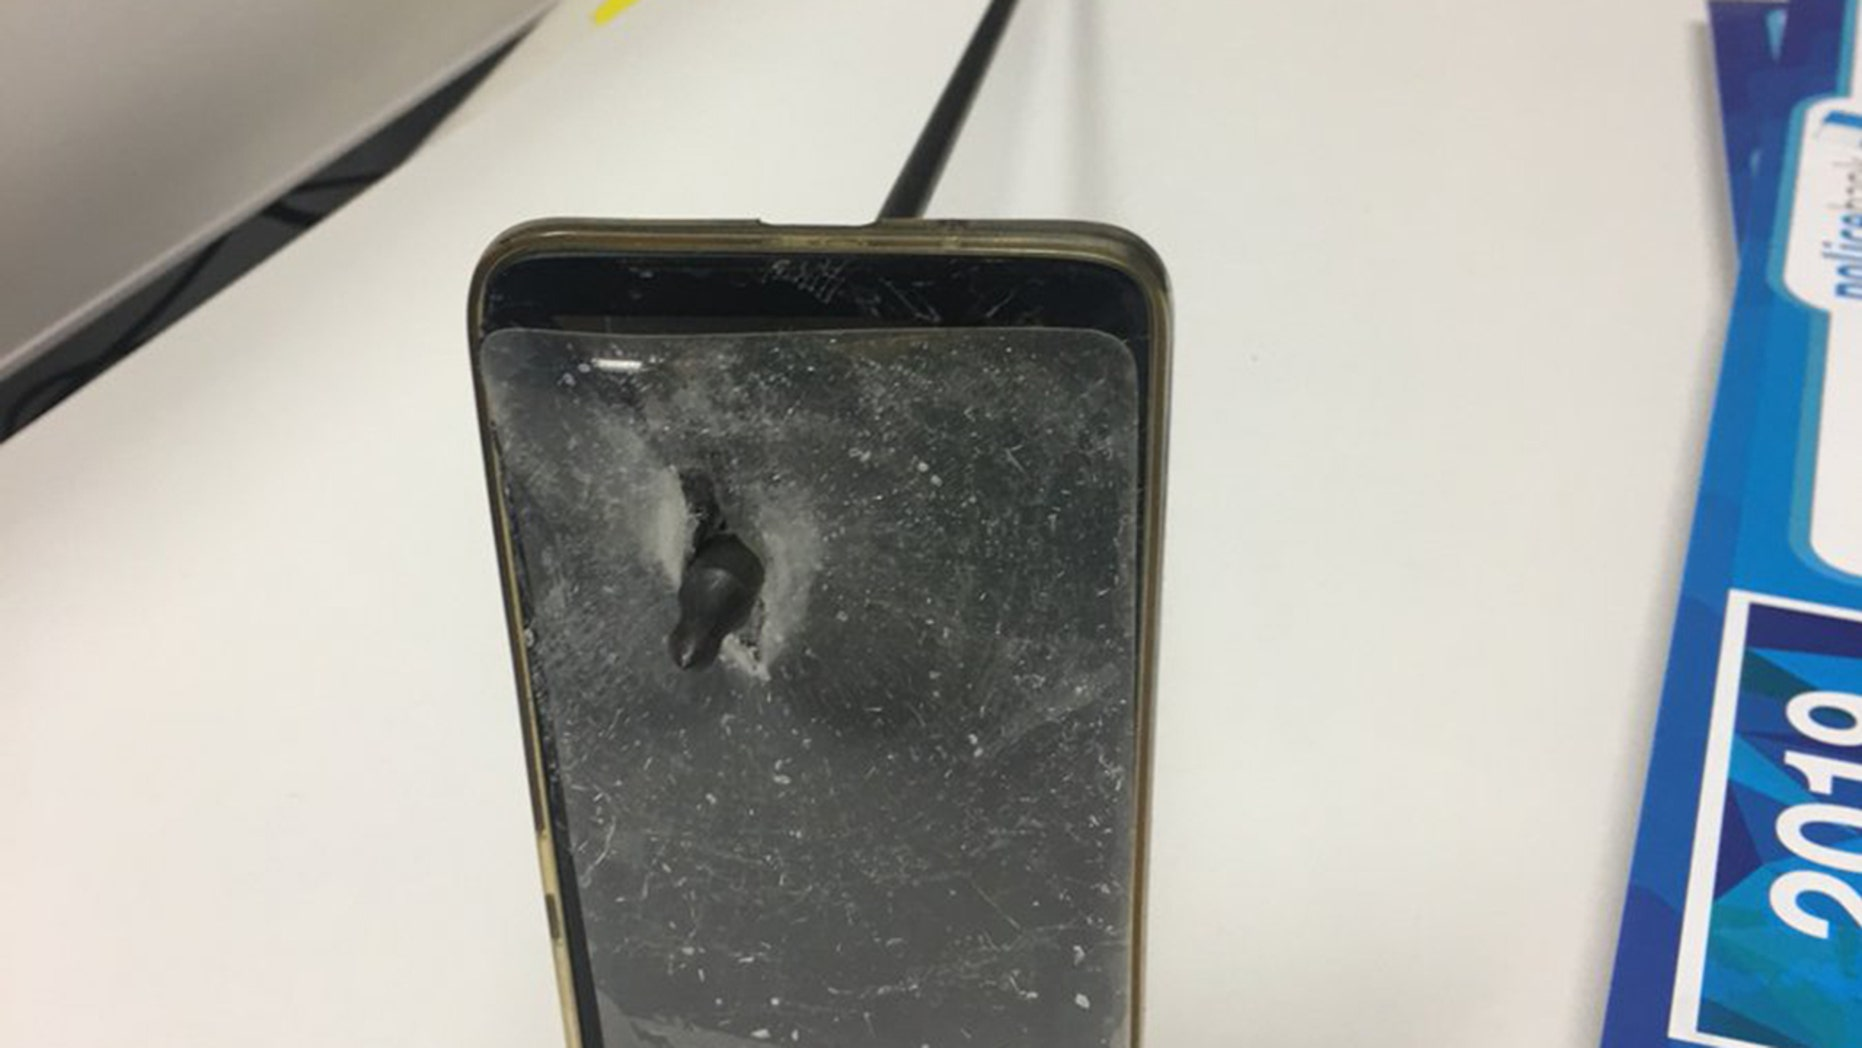 IPhone shields Australian man from bow and arrow attack